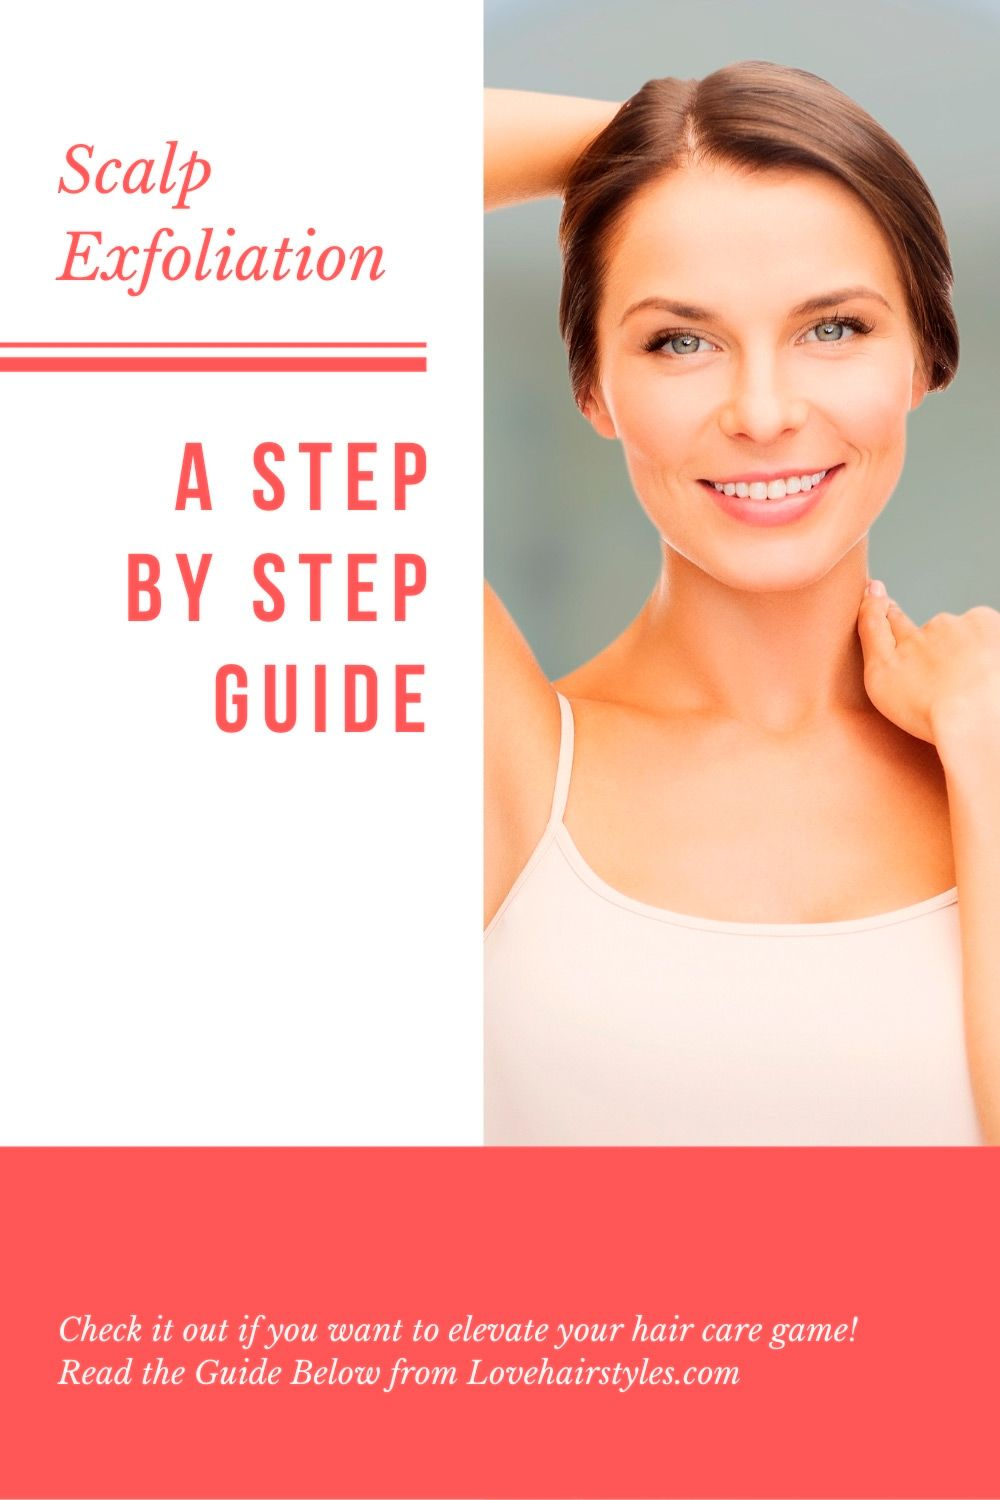 A Step By Step Guide To How To Exfoliate Scalp